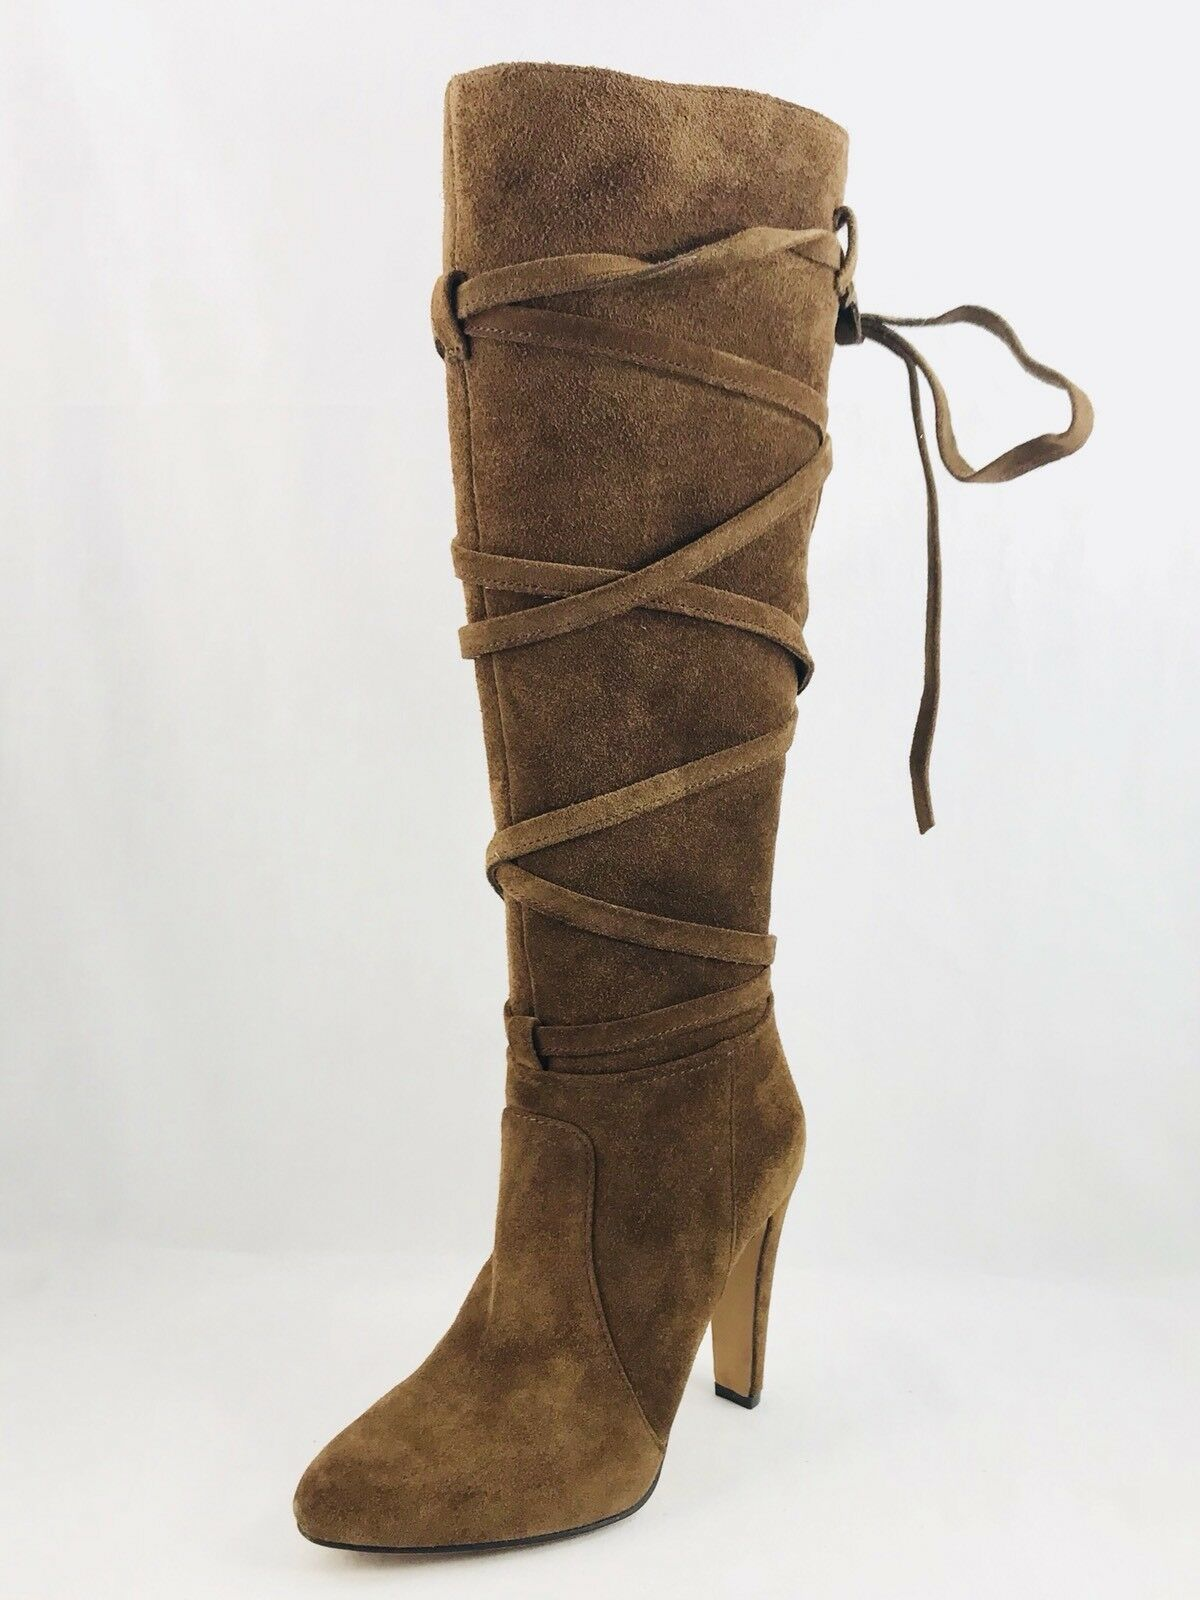 Vince Camuto High Millay Damens Round Toe Suede Braun Knee High Camuto Boot Gre 6.5 1b7867